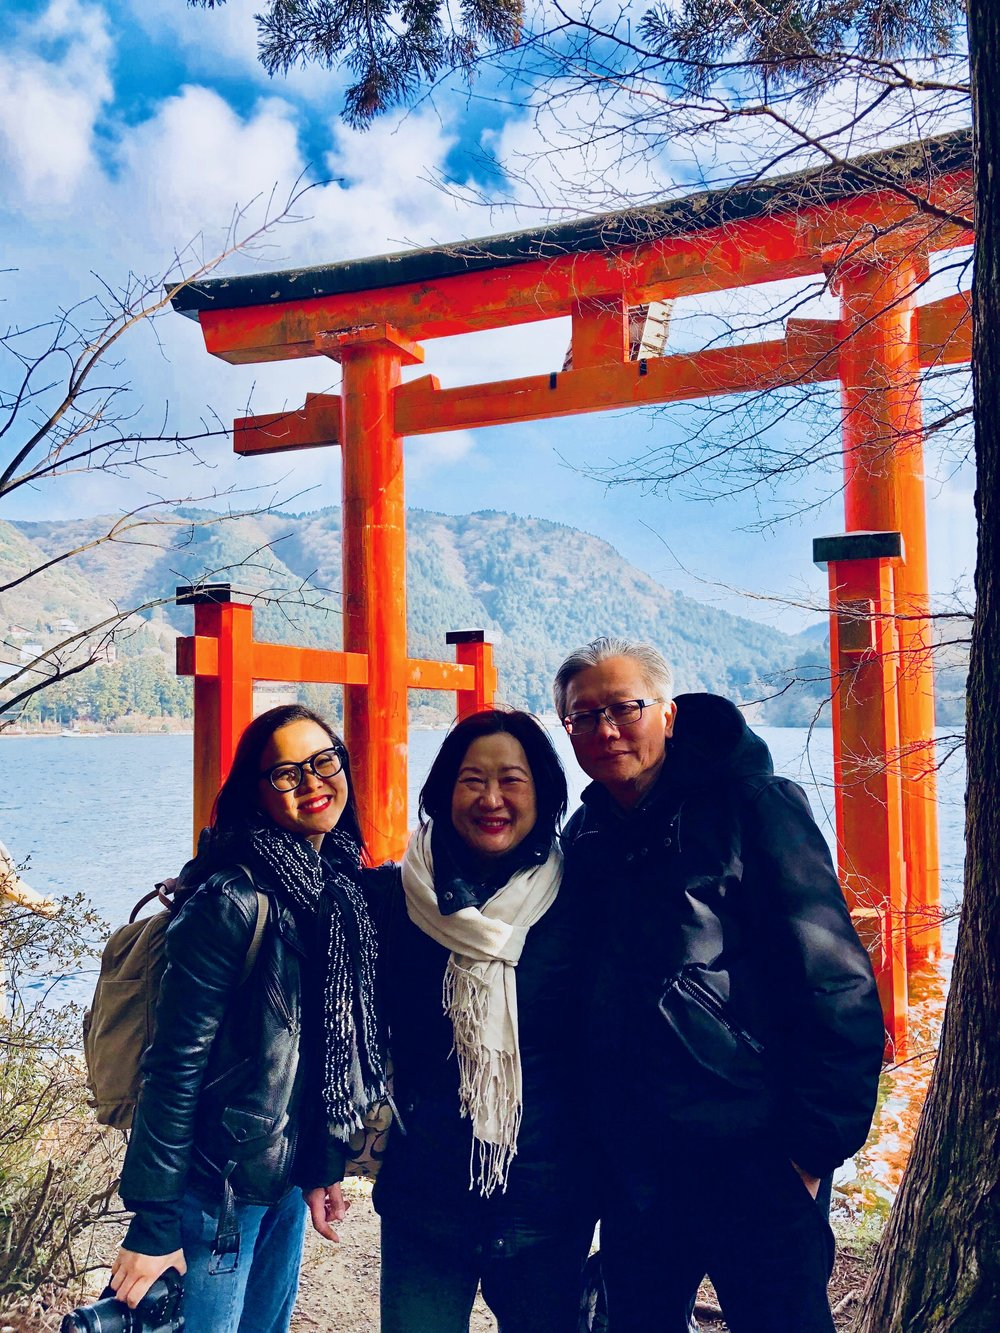 Feeling that golden hour glow at Hakone Shrine with Mama and Papa Chiu